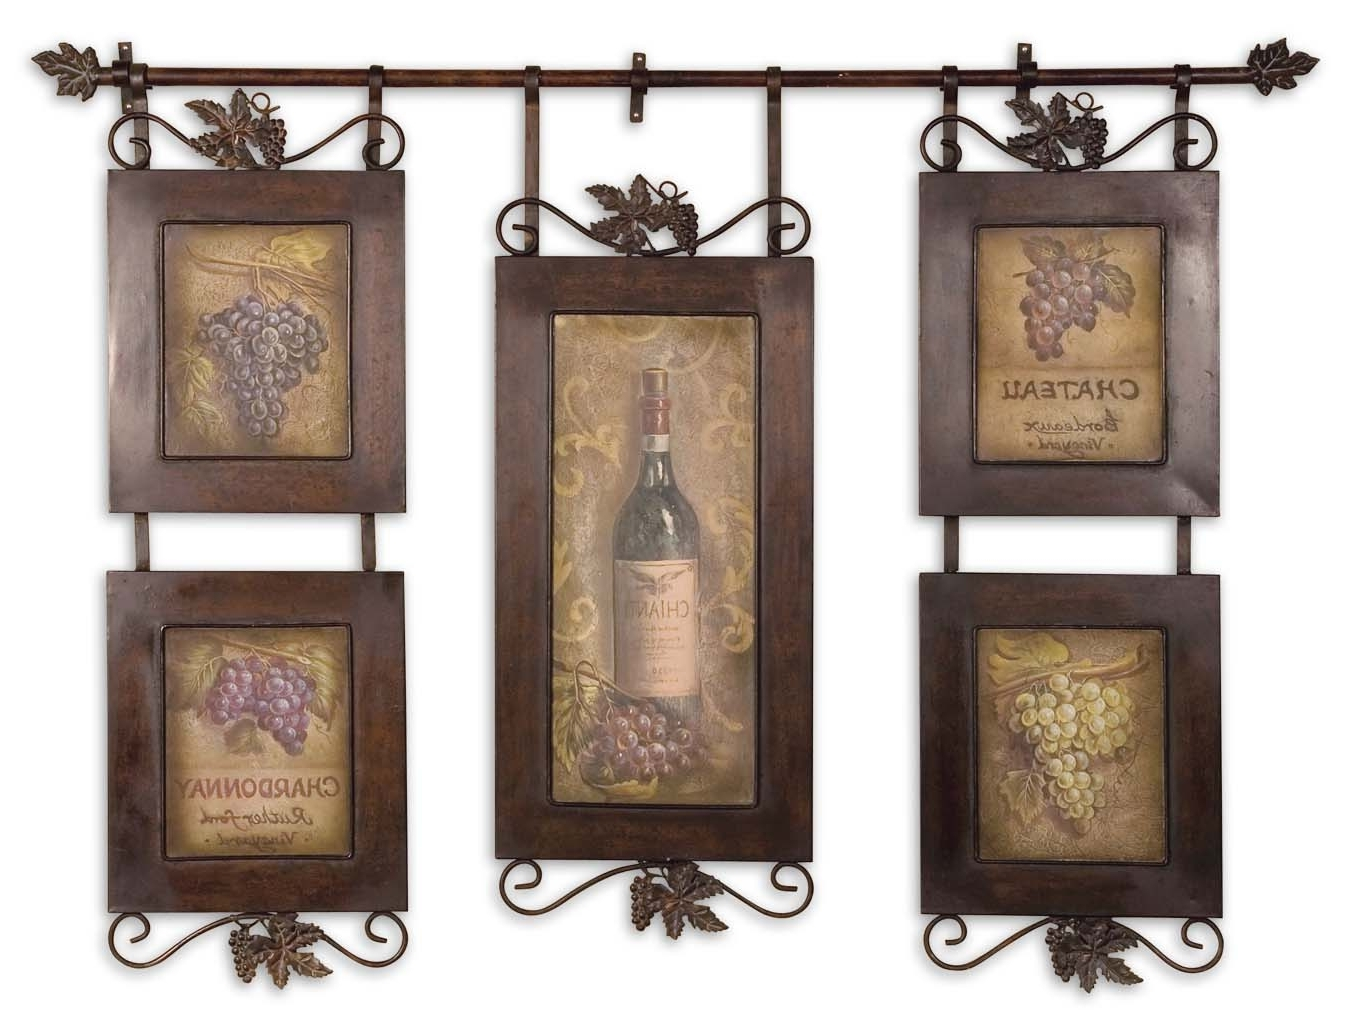 Most Recent Italian Wine Wall Art In Uttermost Hanging Wine Framed Art (View 8 of 15)